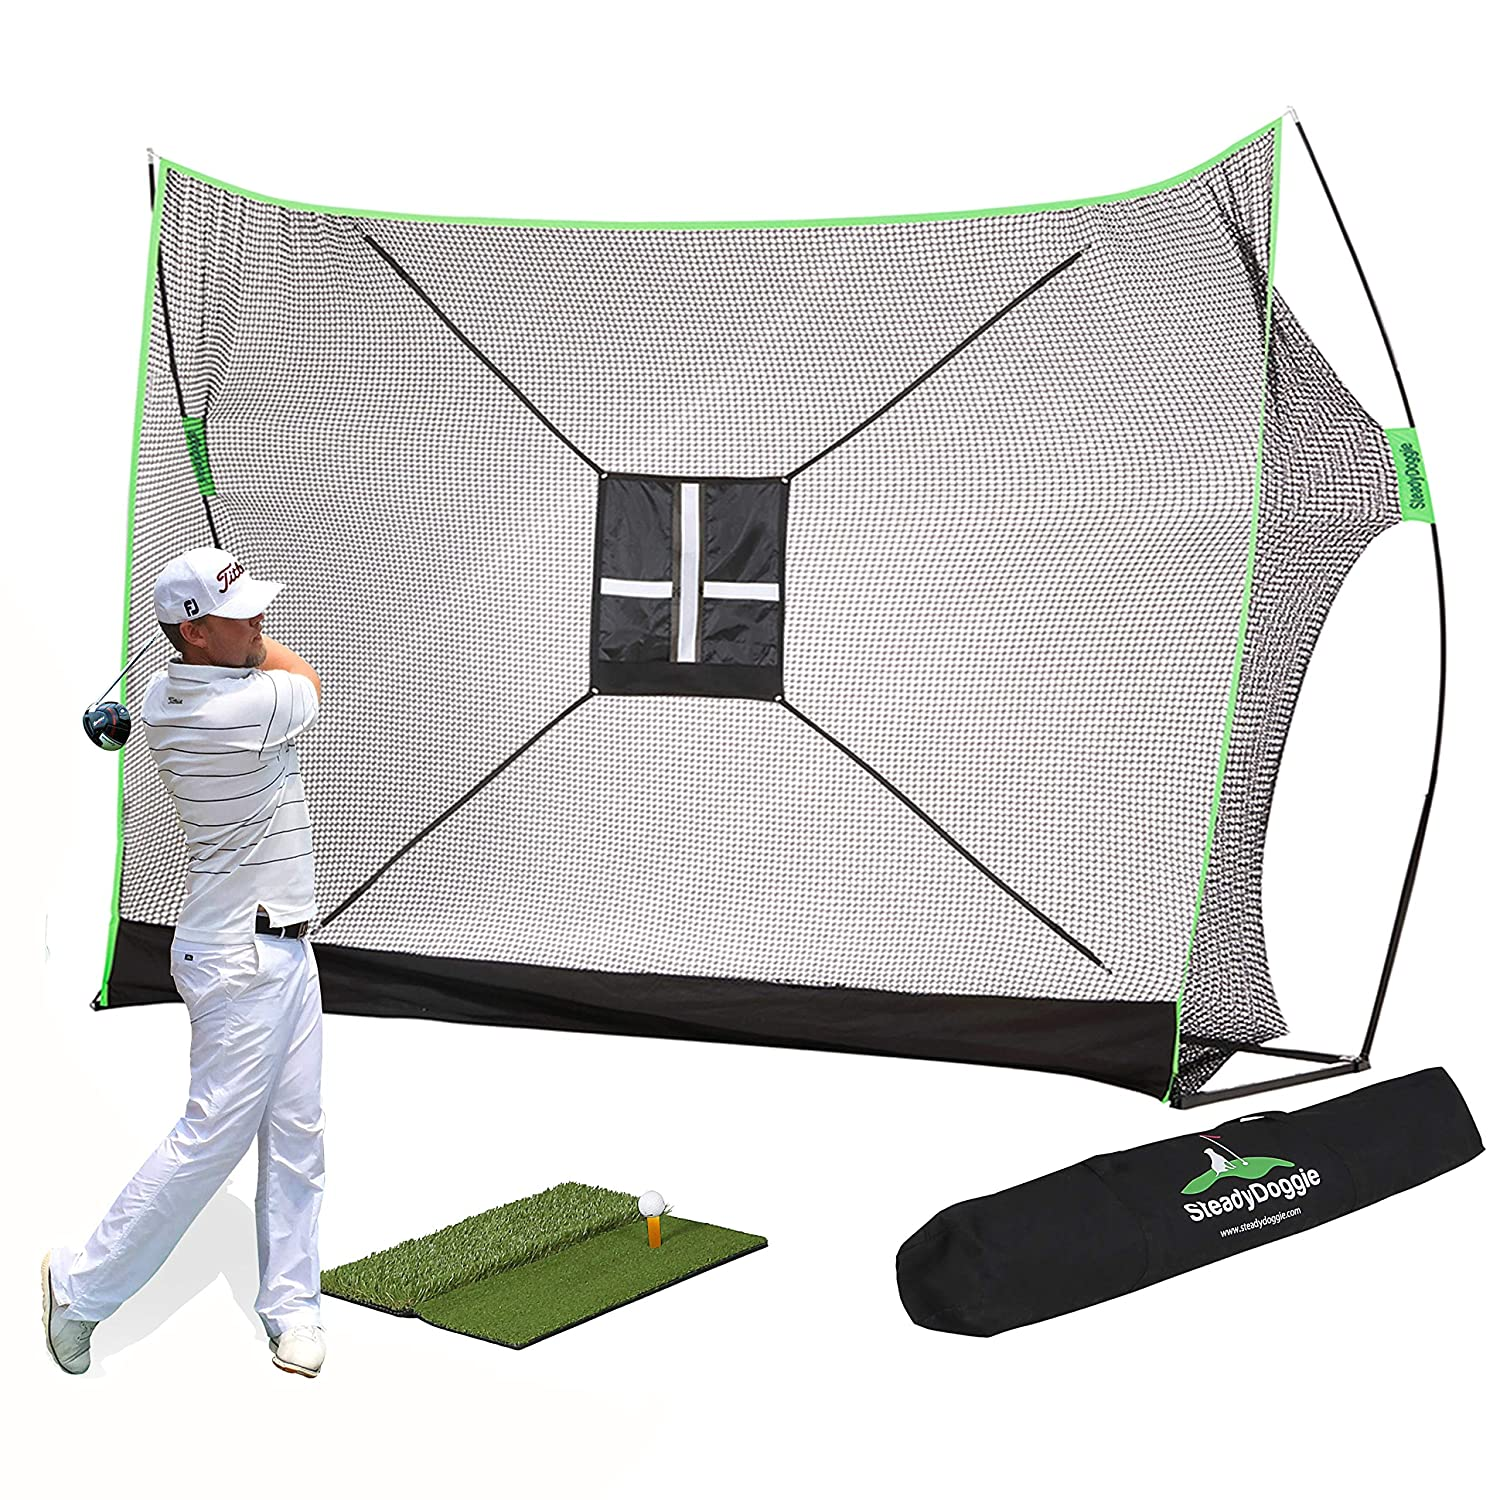 10 x 7ft Golf Net Bundle 4pc & 3pc-Professional Patent Pending Design-Dual-Turf Golf Mat, Chipping Target and Carry Bag-The Right Choice of Golf Nets for Backyard Driving & Golf Hitting Nets